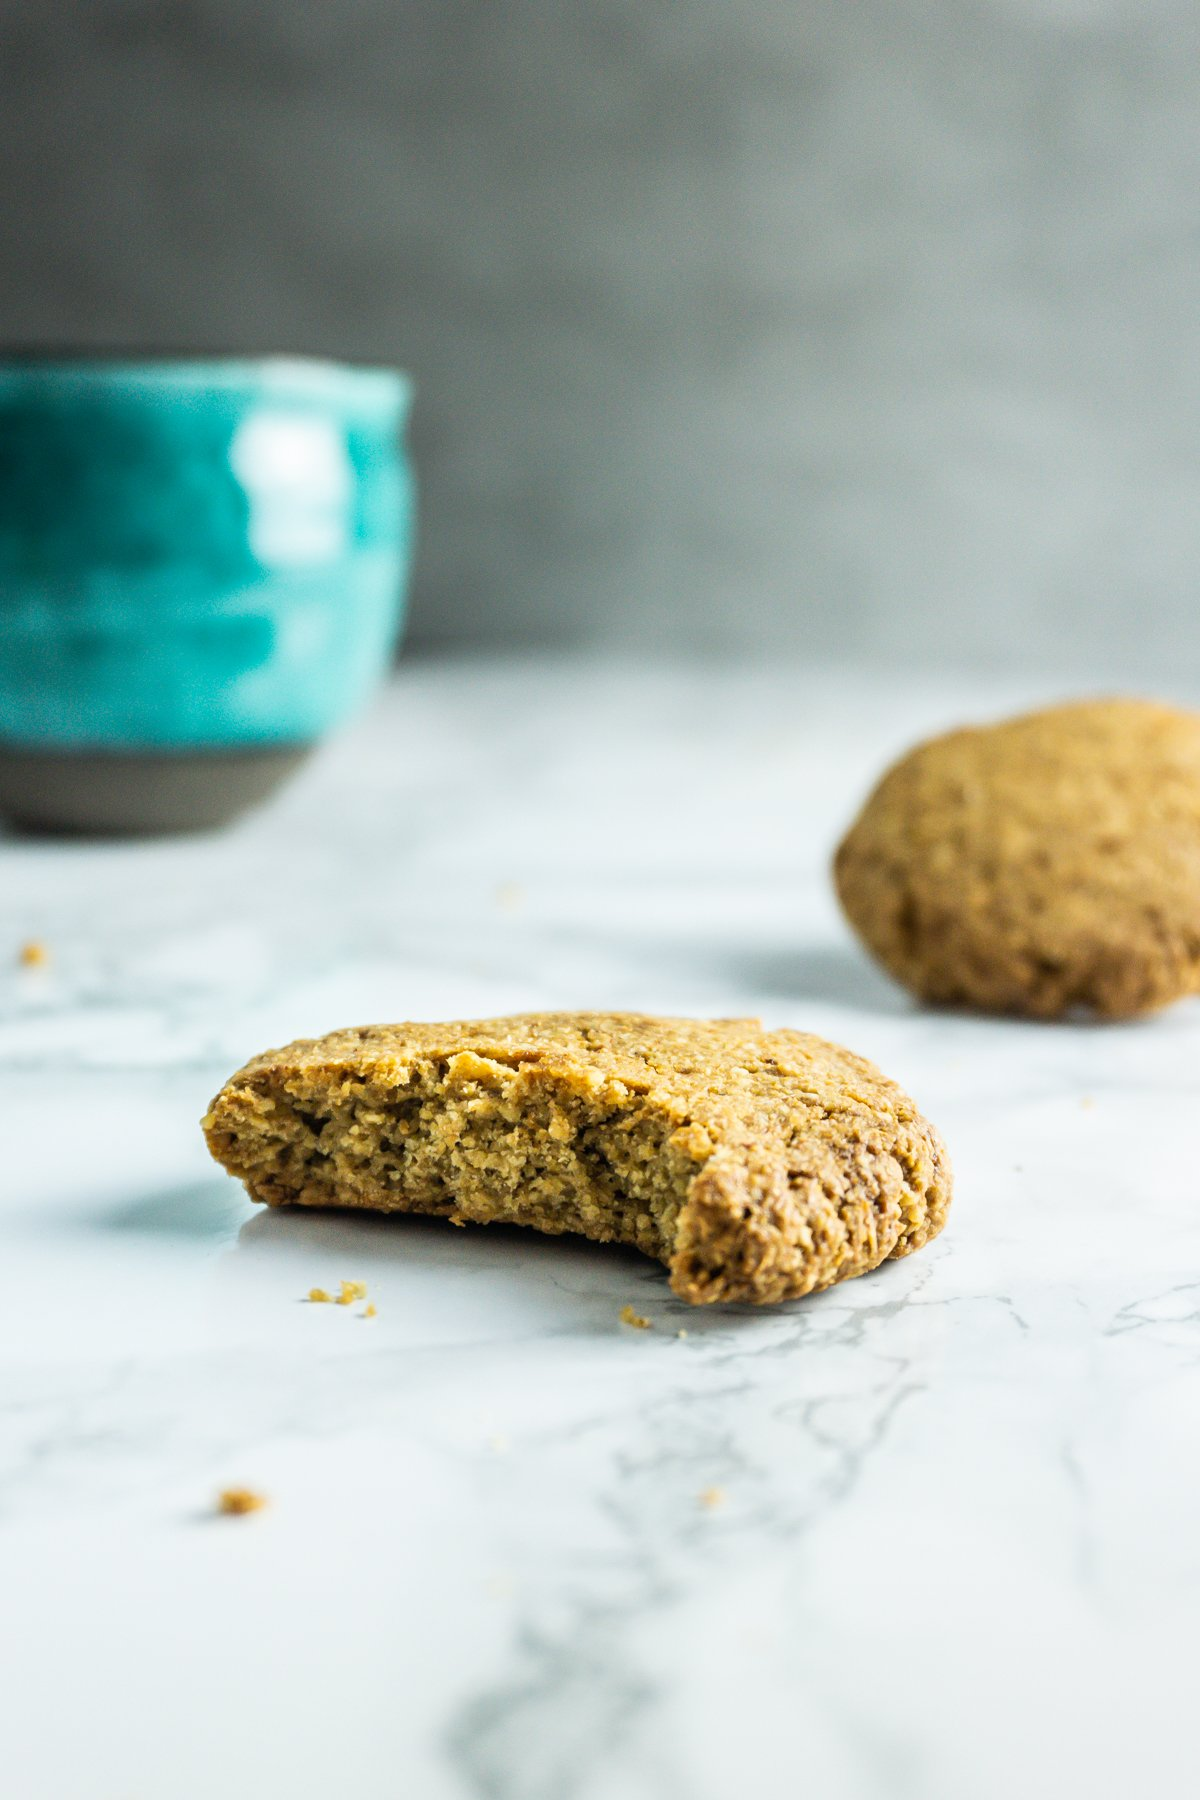 Bitten Crunchy Ginger Cookie with a green cup in the background